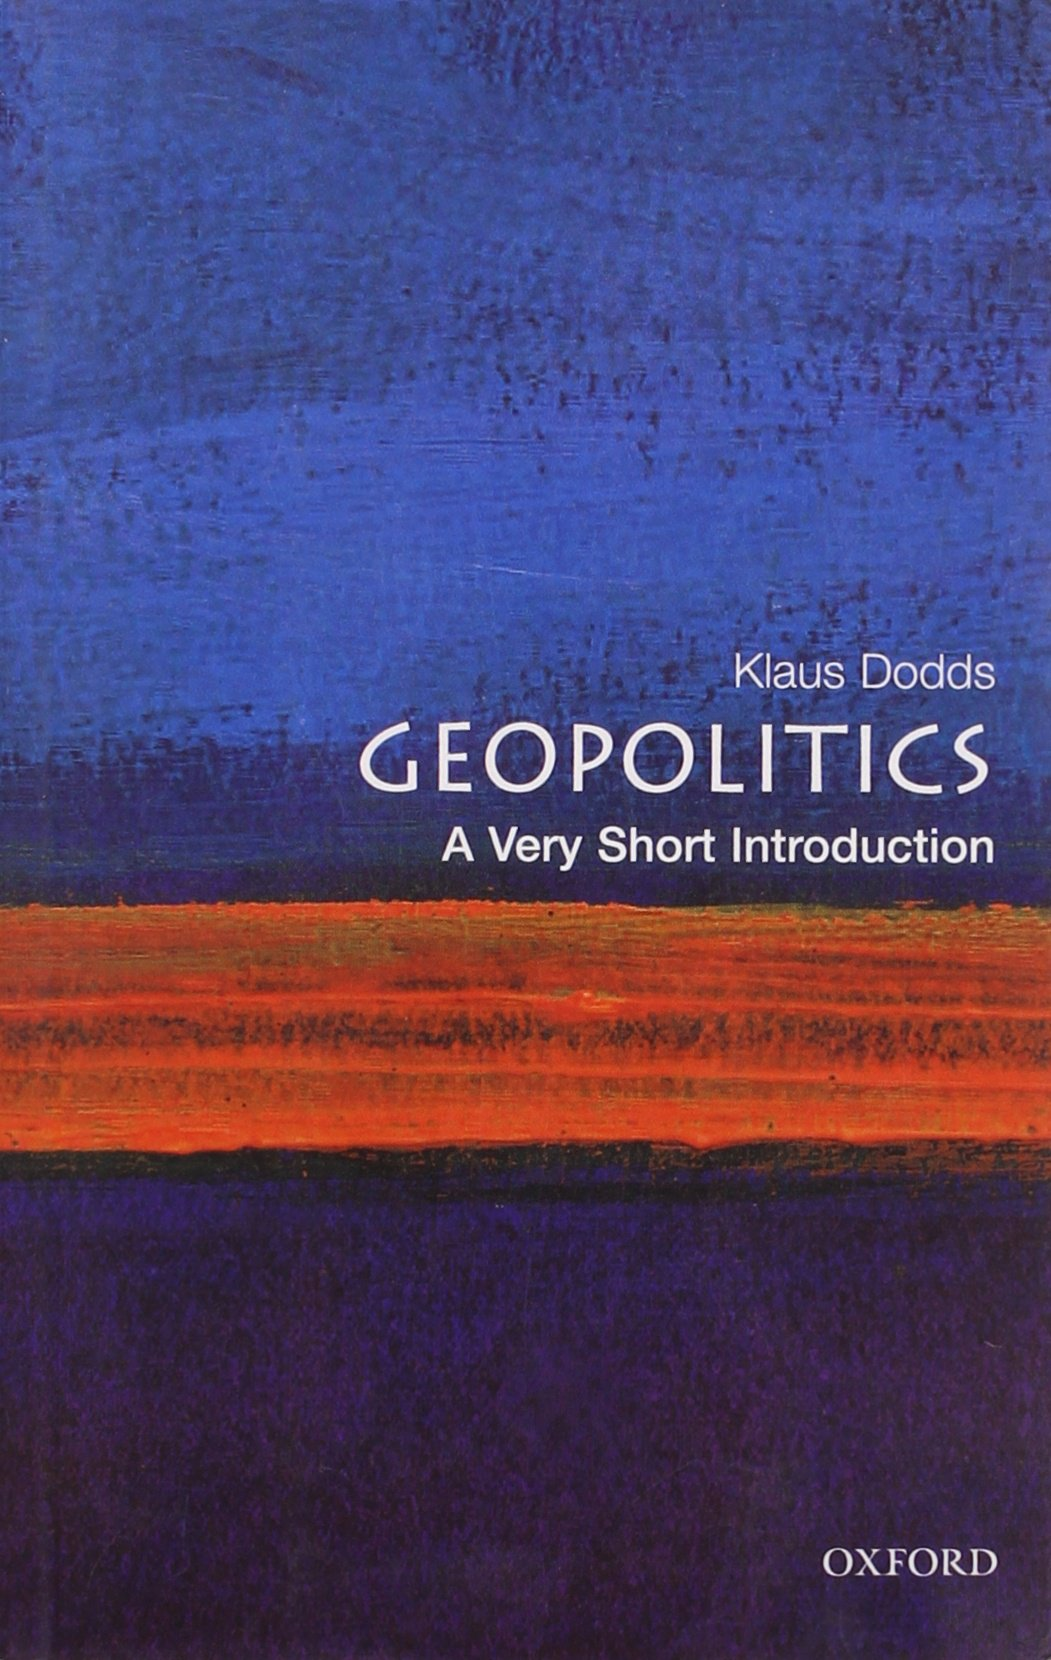 a very short introduction to geopolitics pdf